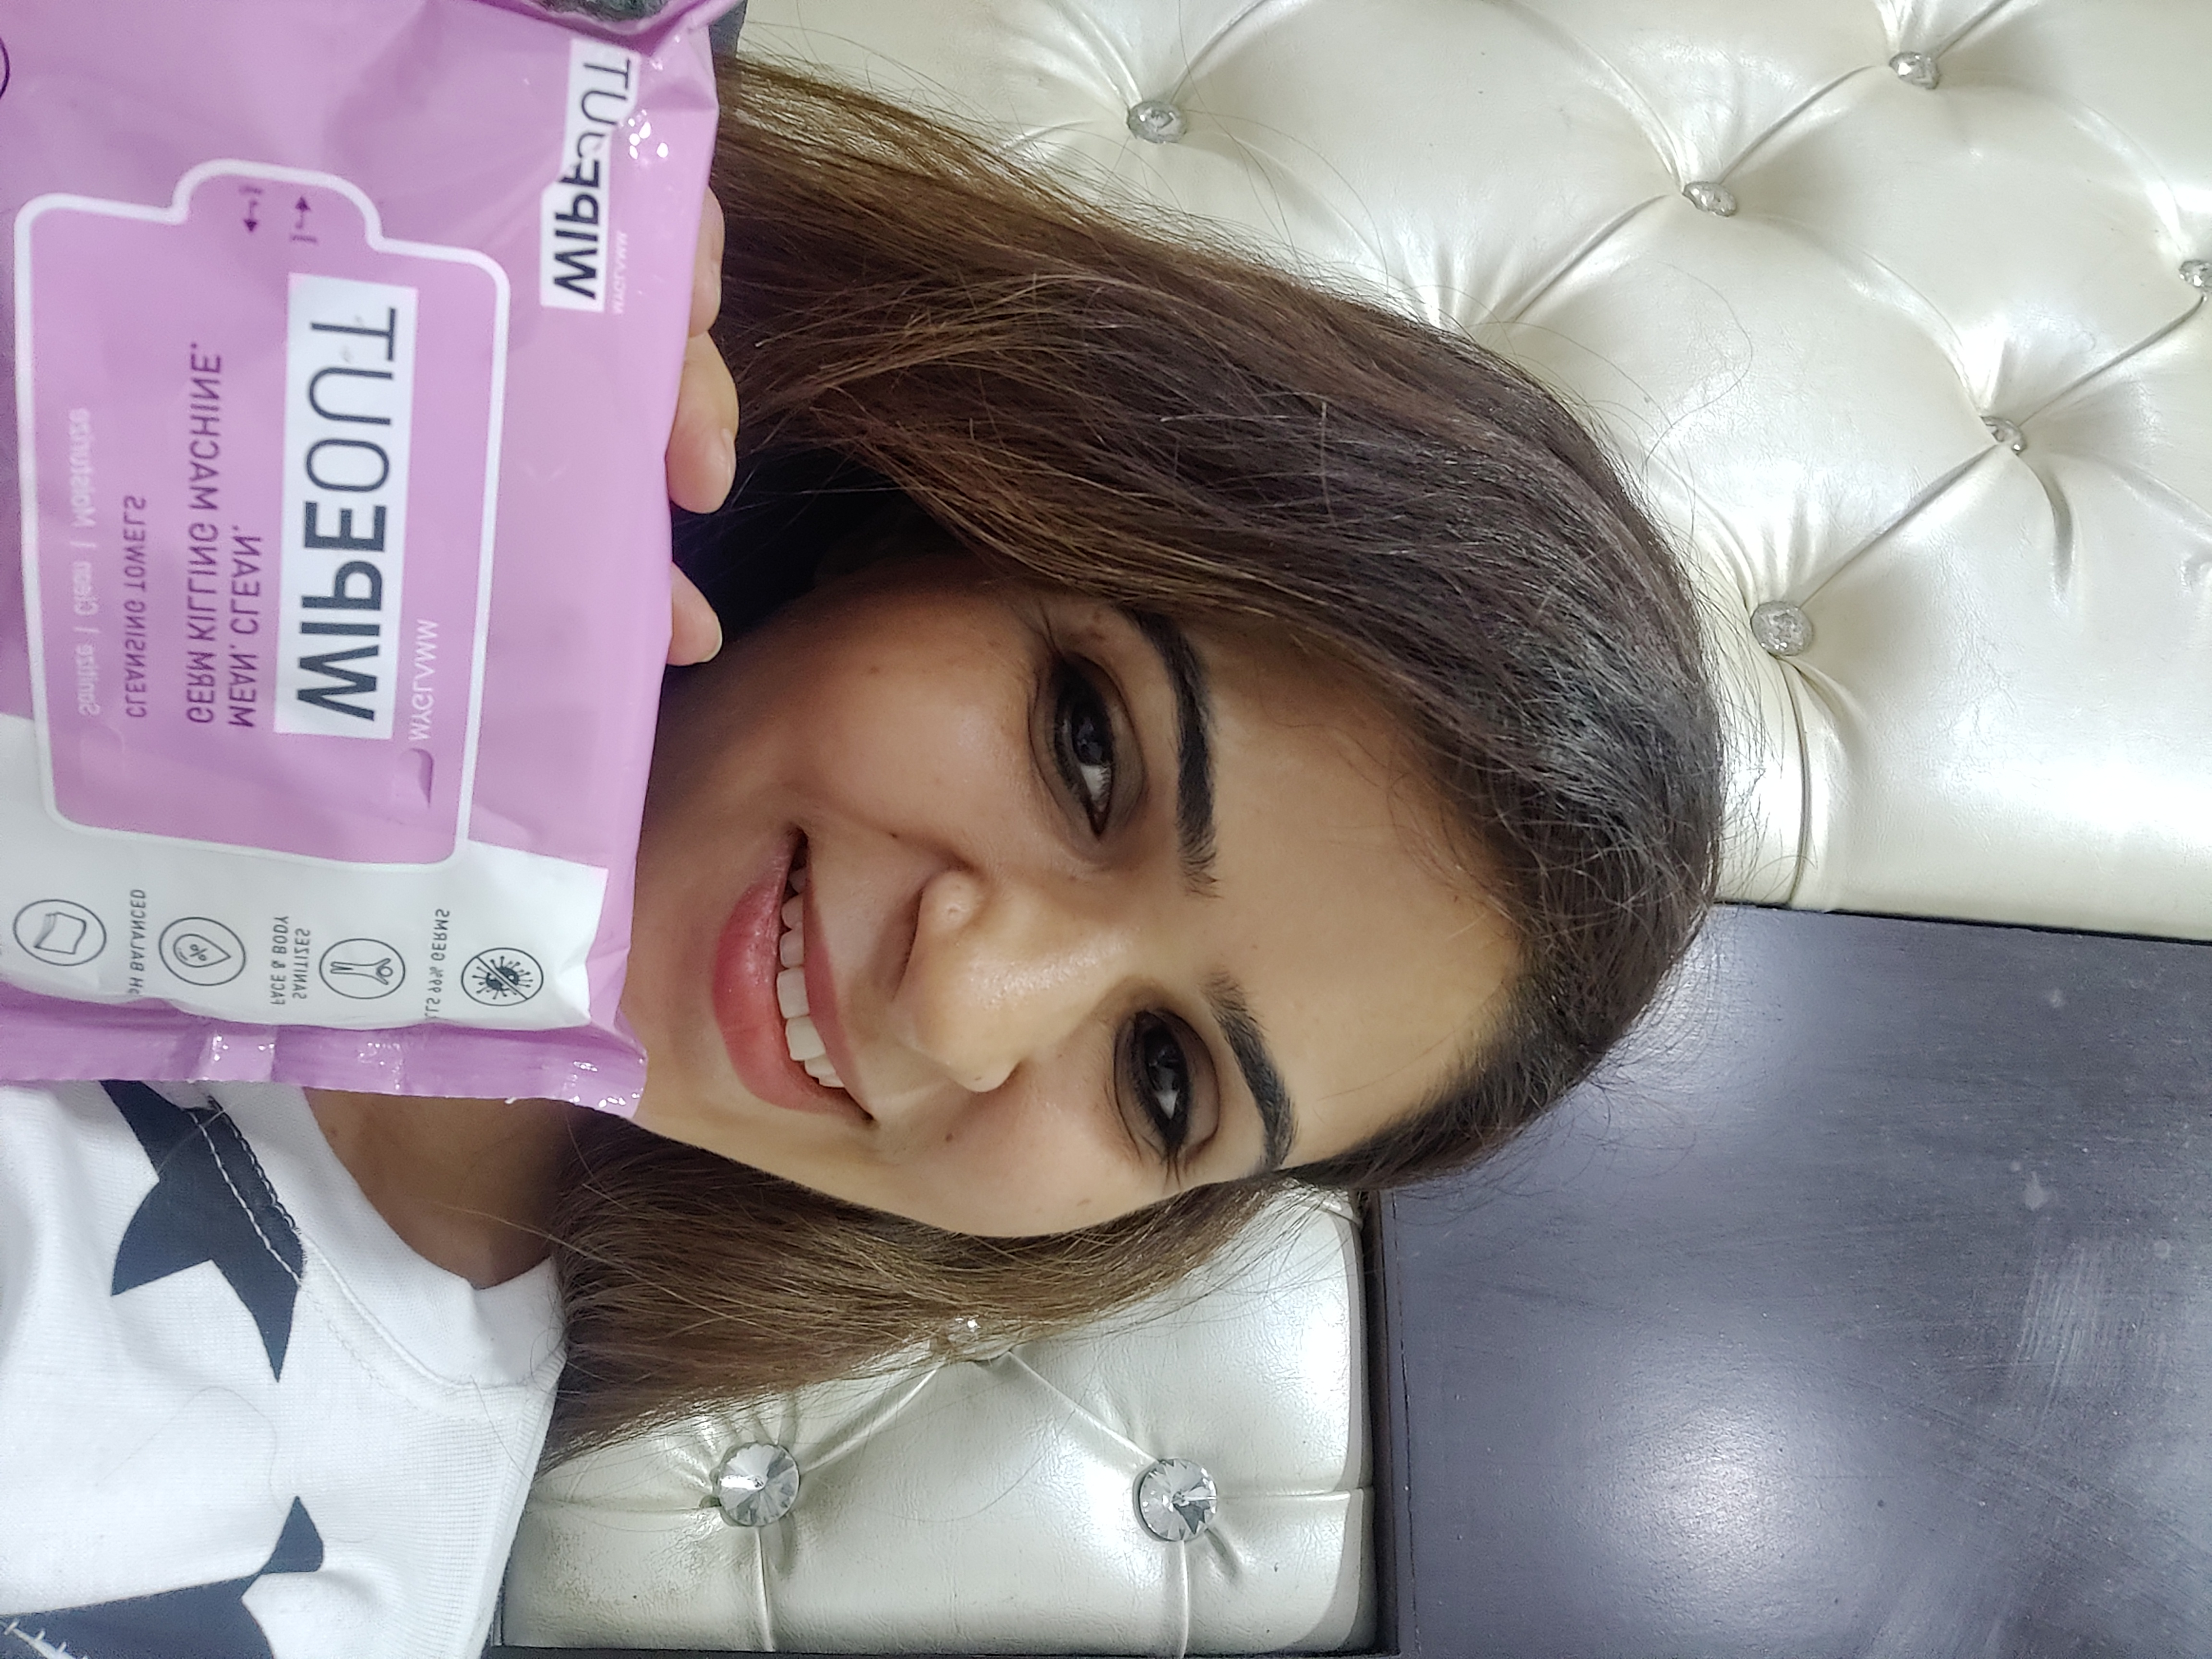 MyGlamm Wipeout Cleansing Towels-Wipeout-By shalini_bhatia-2